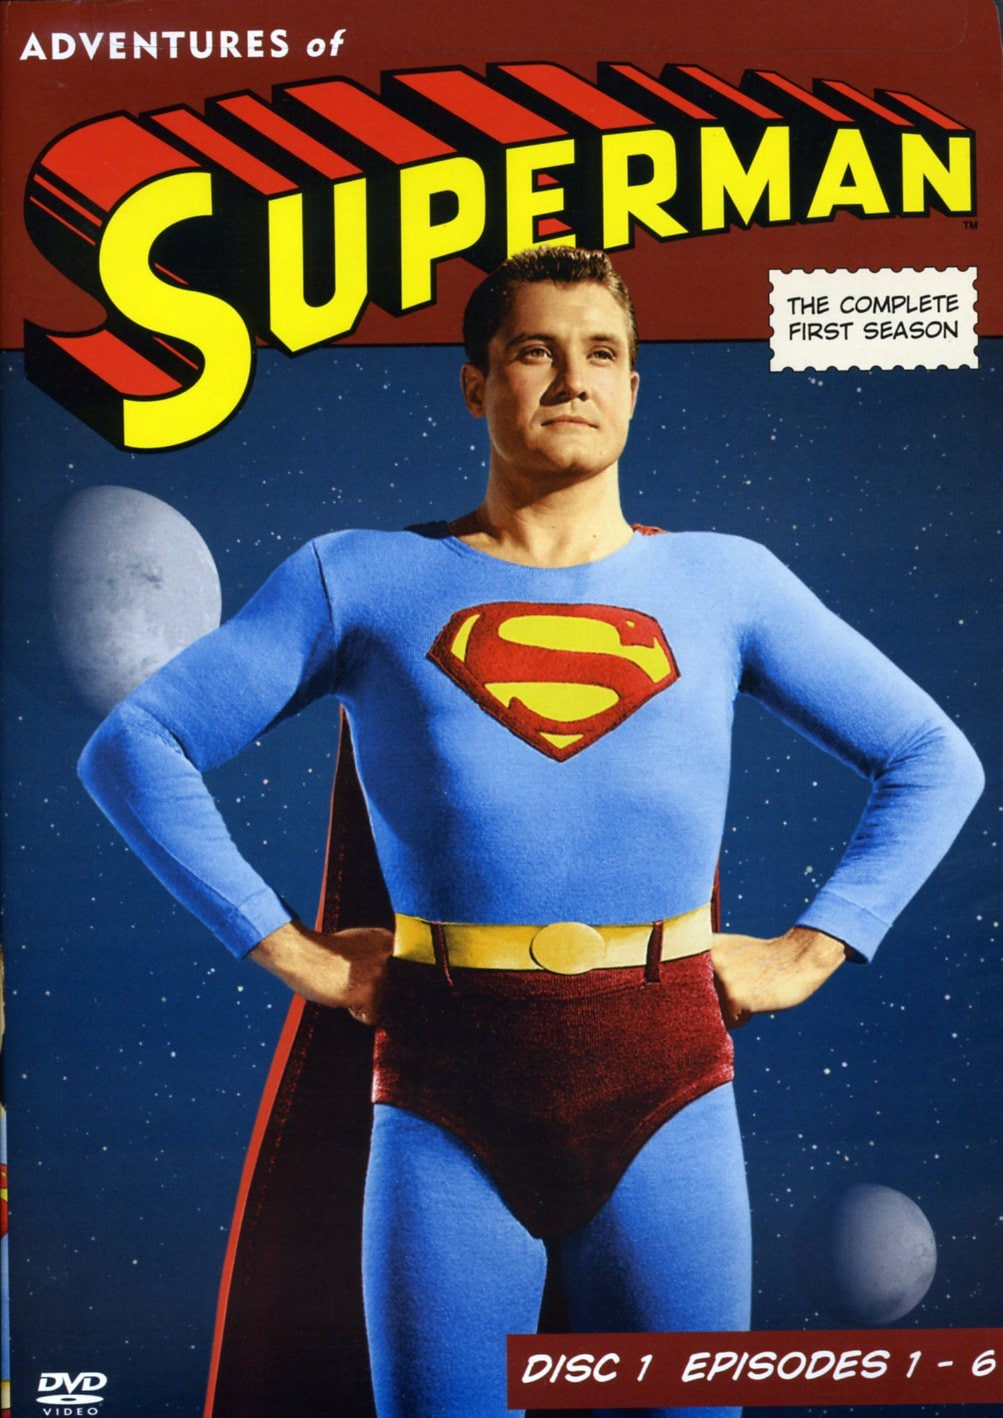 Adventures of Superman: Season 1 (DVD)